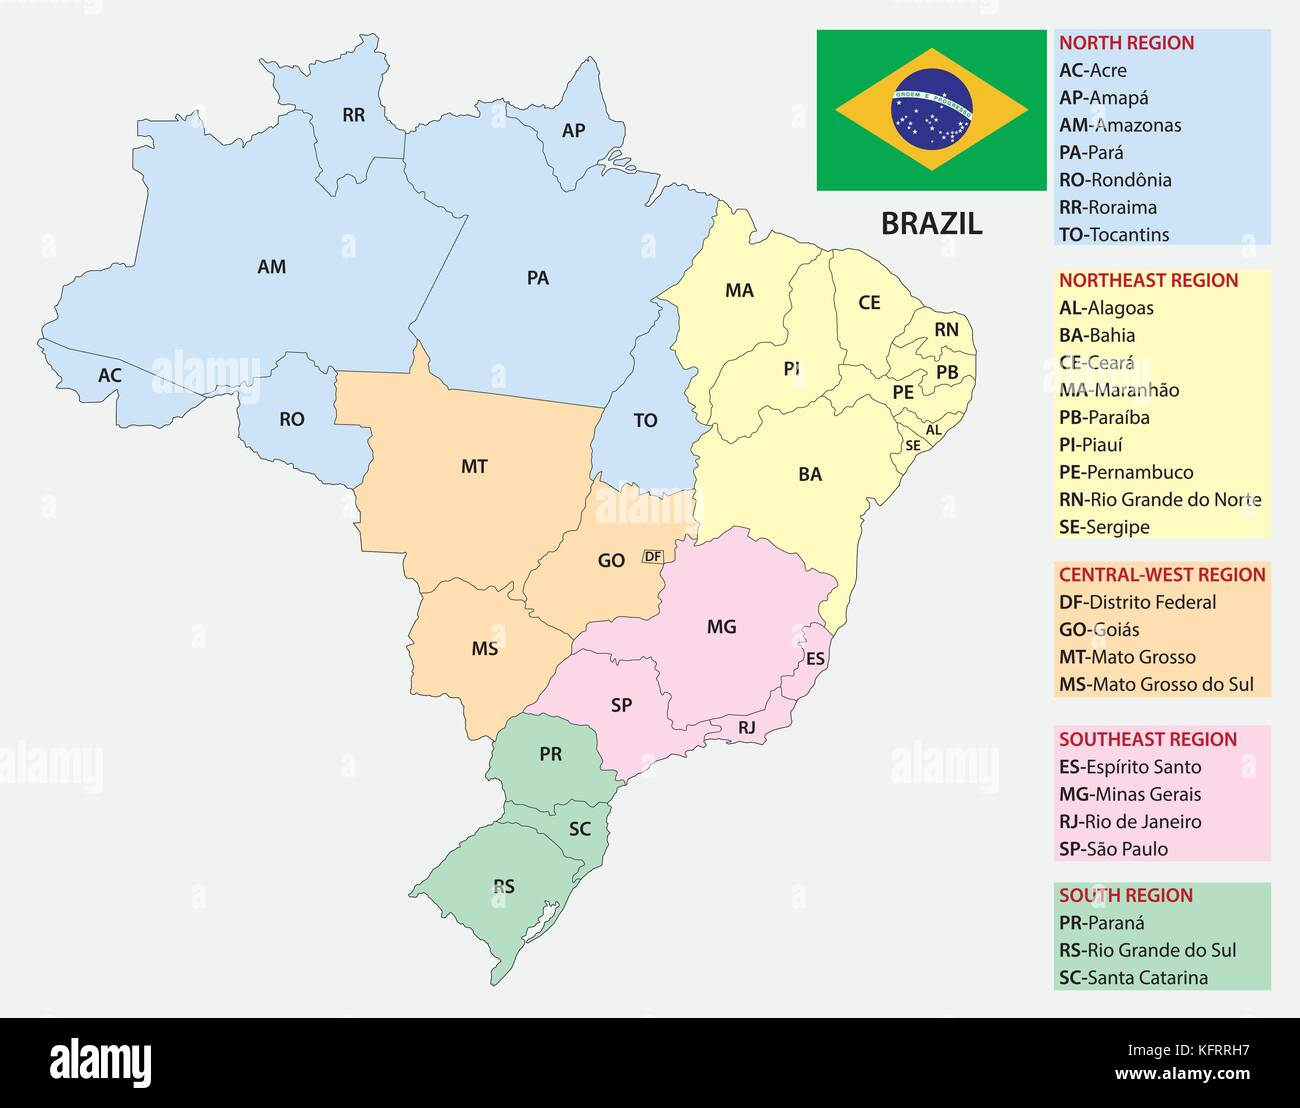 Sao paulo map vector stock photos sao paulo map vector stock brazil administrative and territorial division map with flag stock image gumiabroncs Gallery